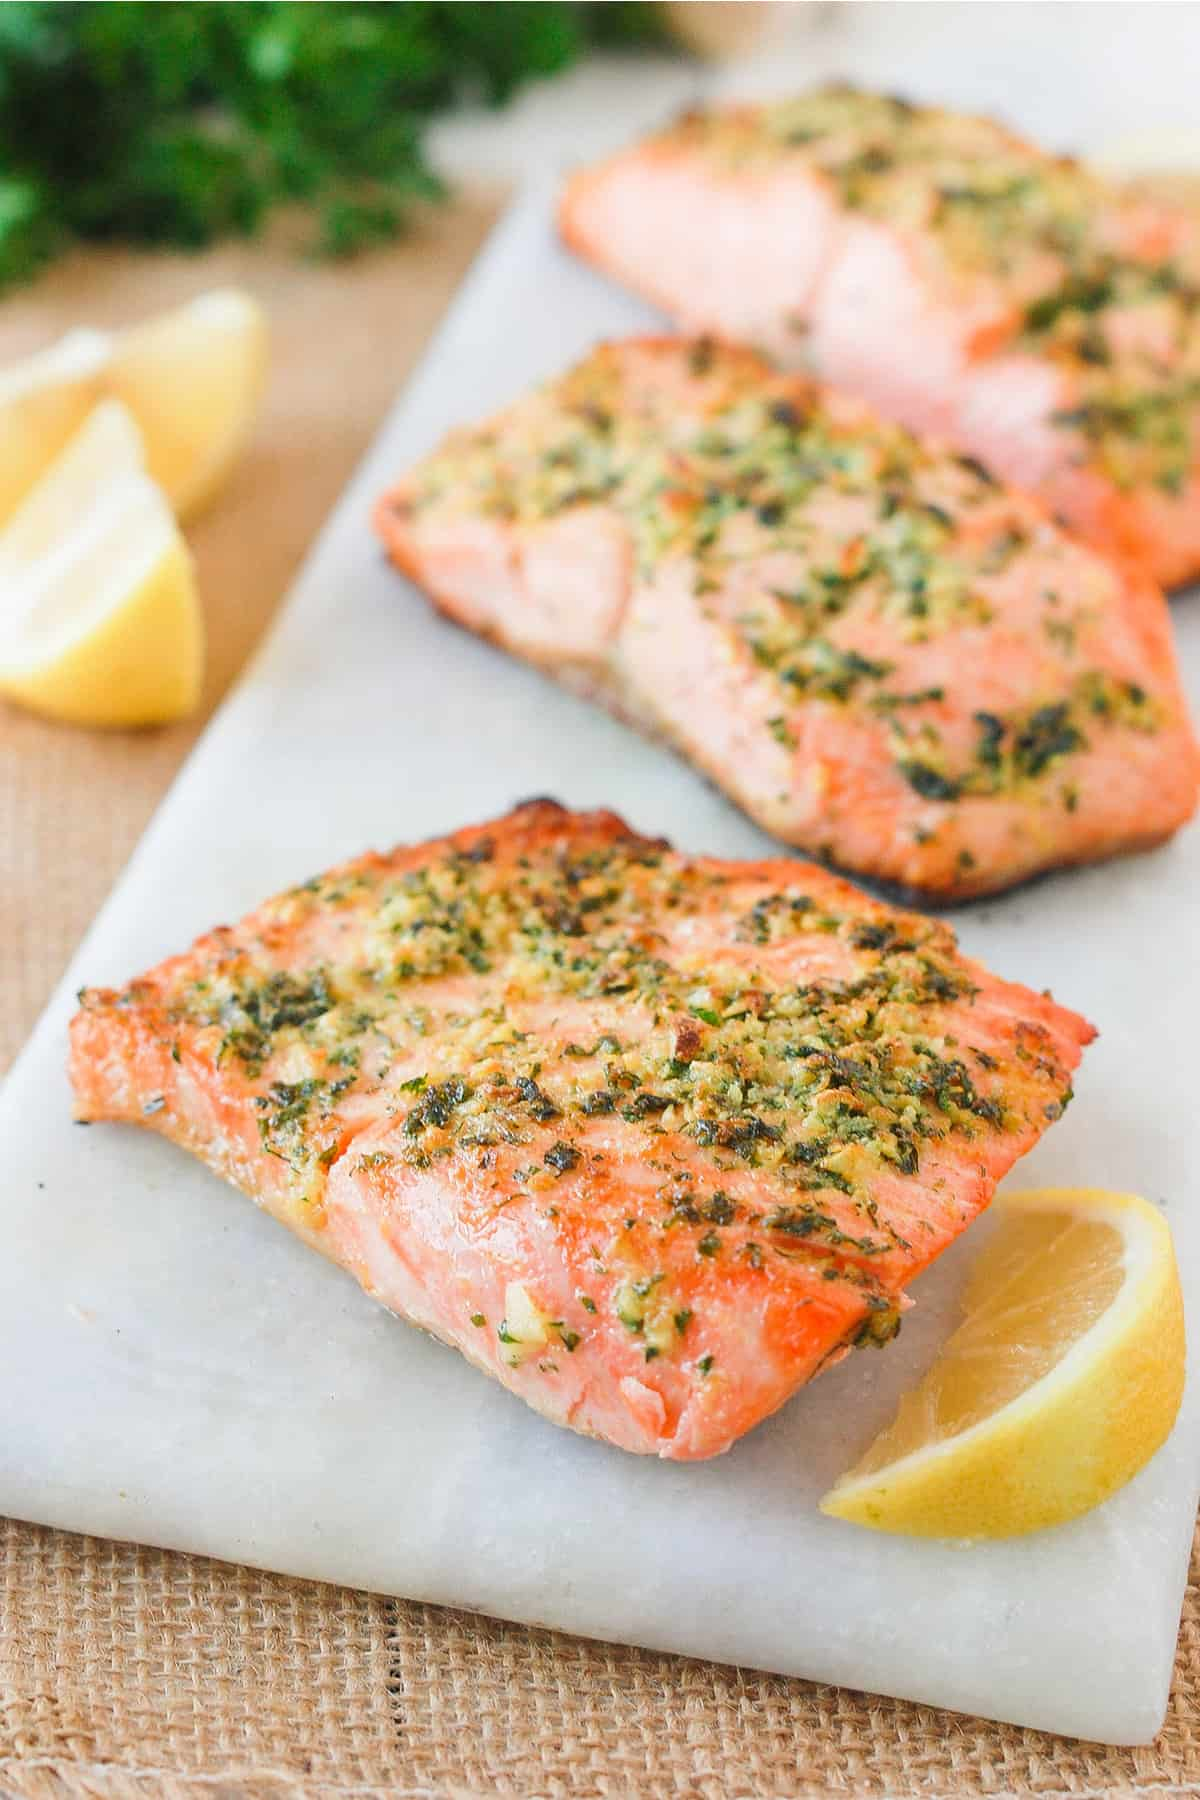 Herb baked salmon with lemon and garlic on a white cutting board.